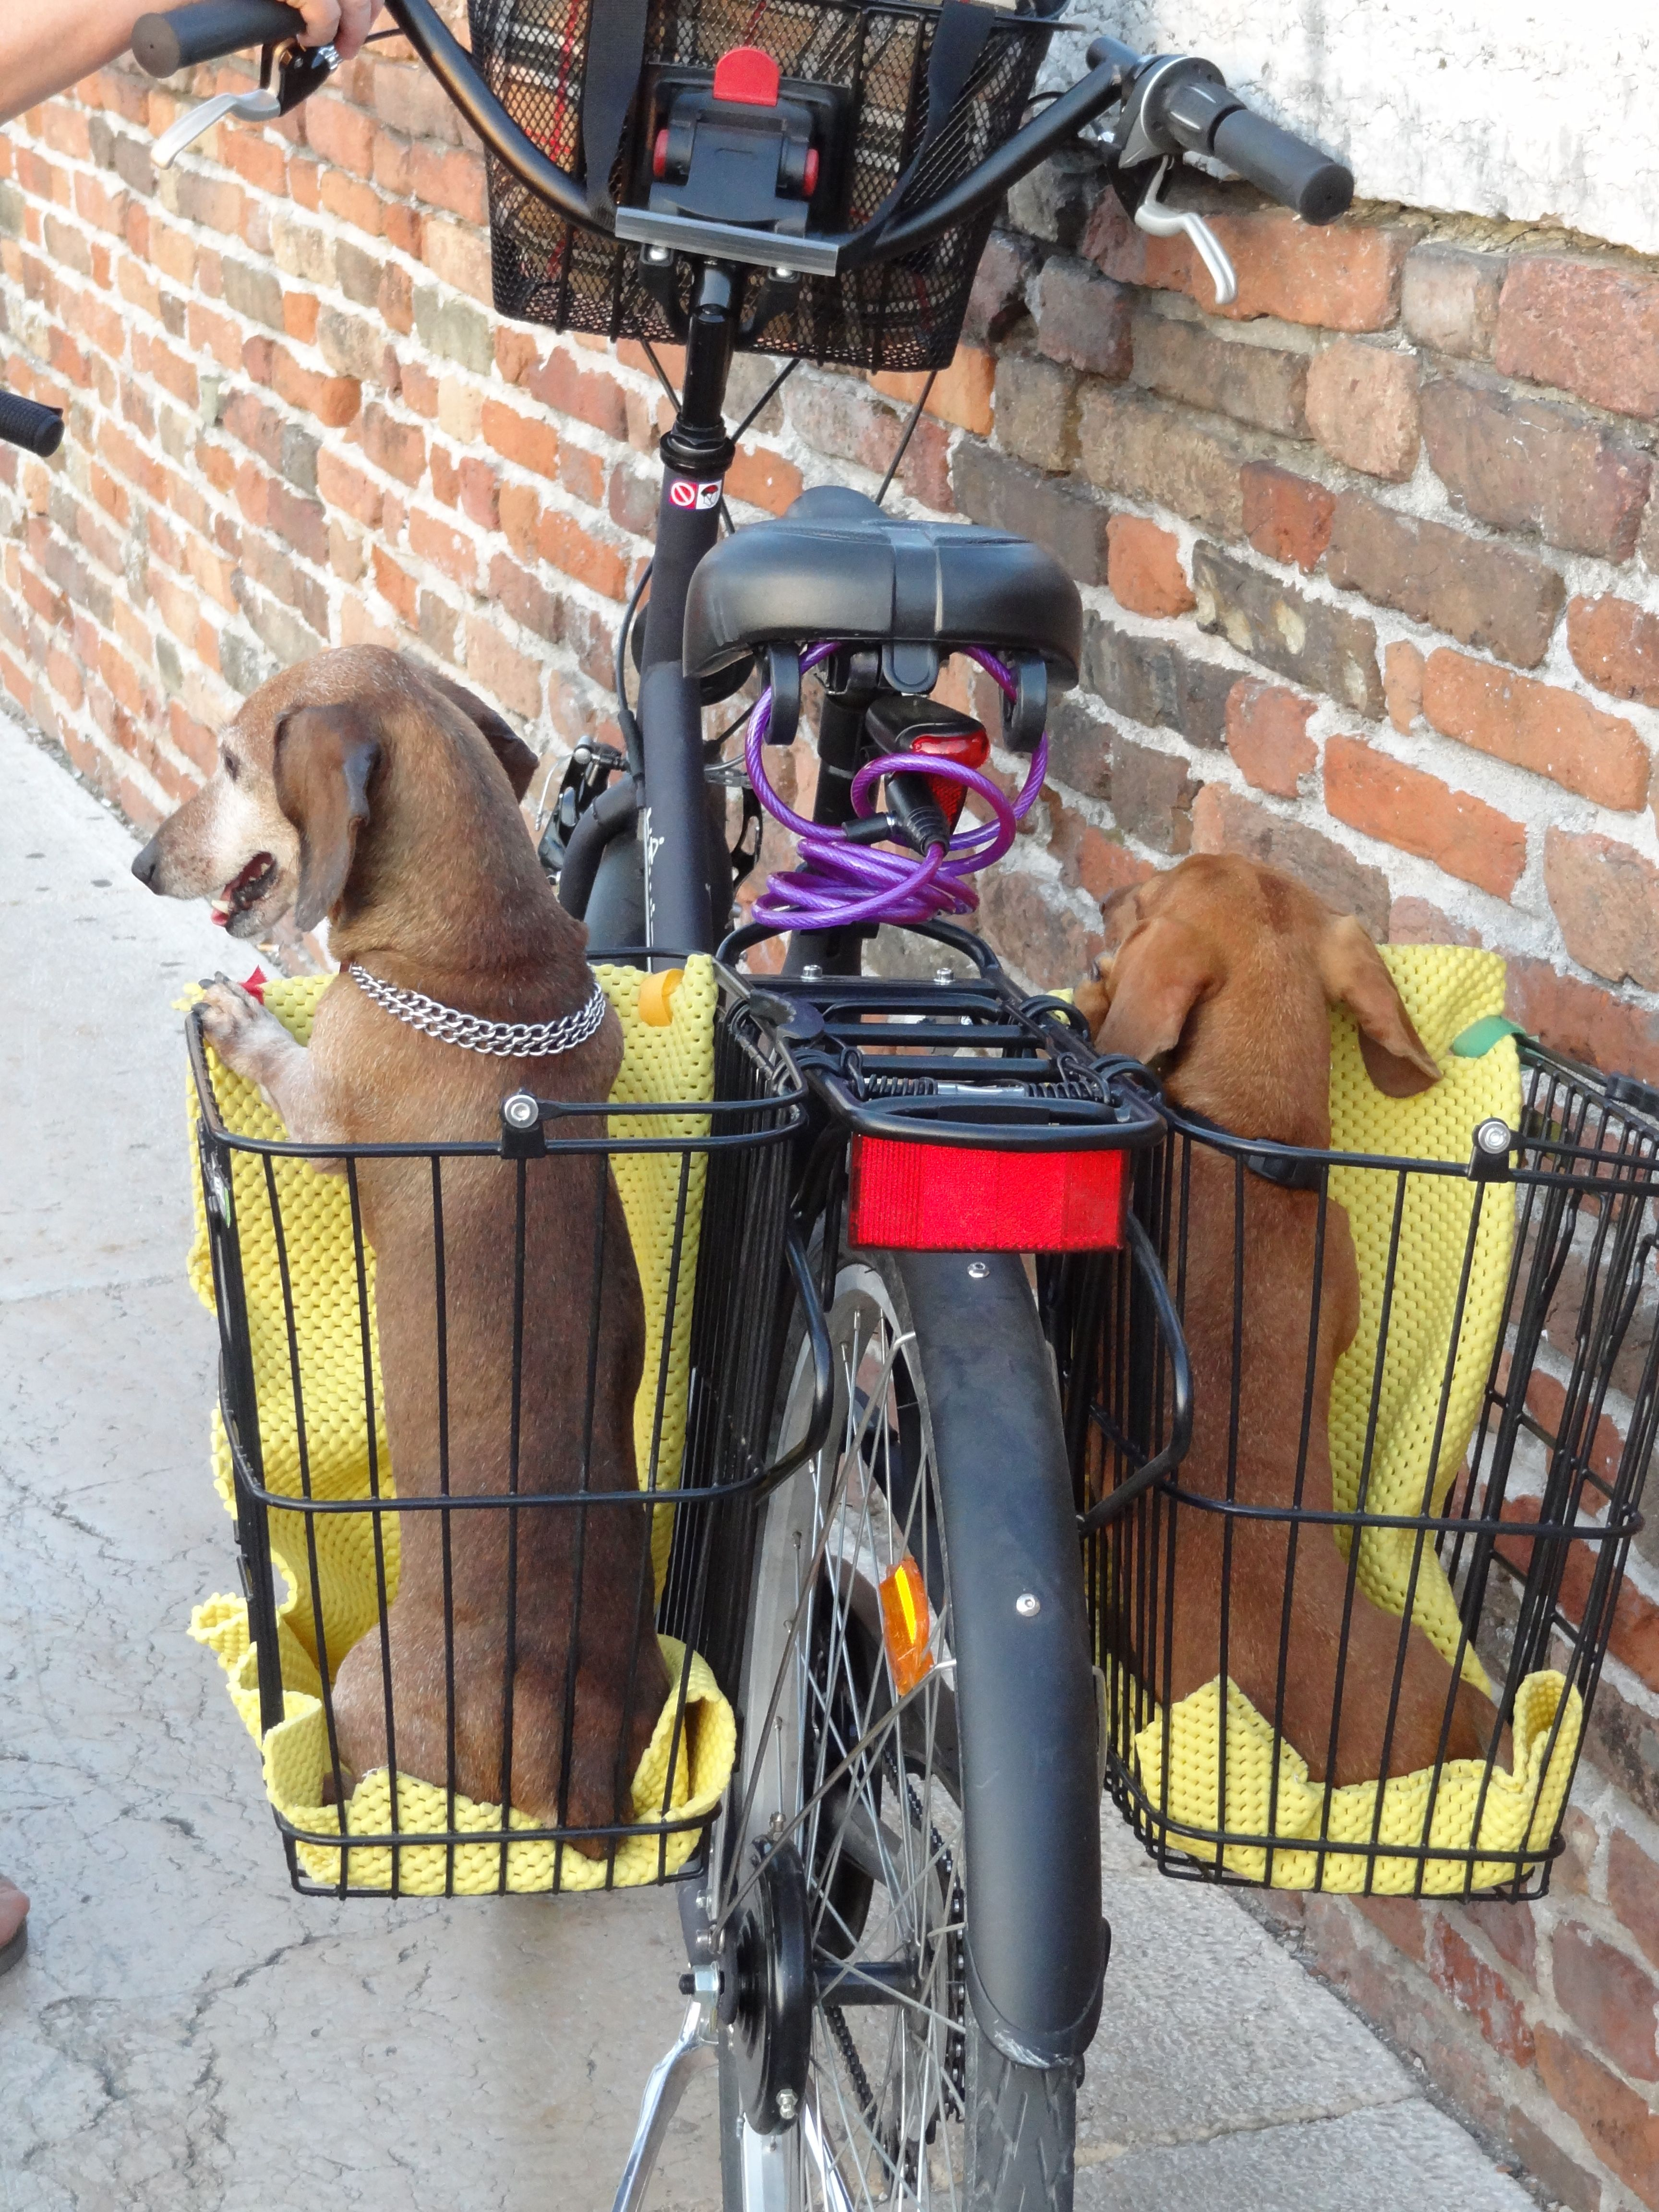 Bad Bike Beach Vintage Side Sidewinders This Is So Adorable Long Dogs Dogs